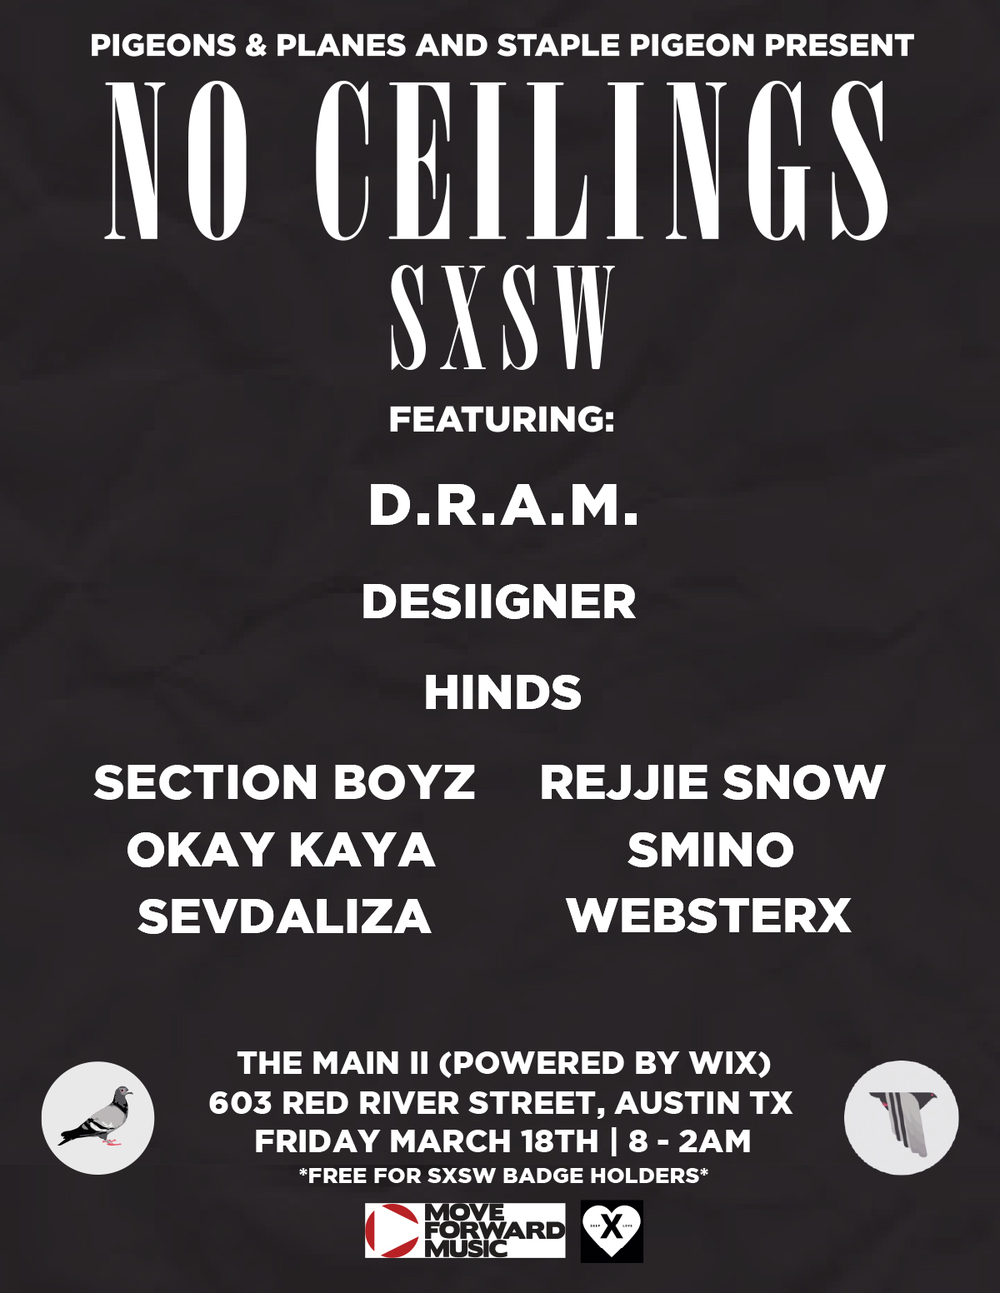 No-ceilings-SXSWfinalfinal.jpg